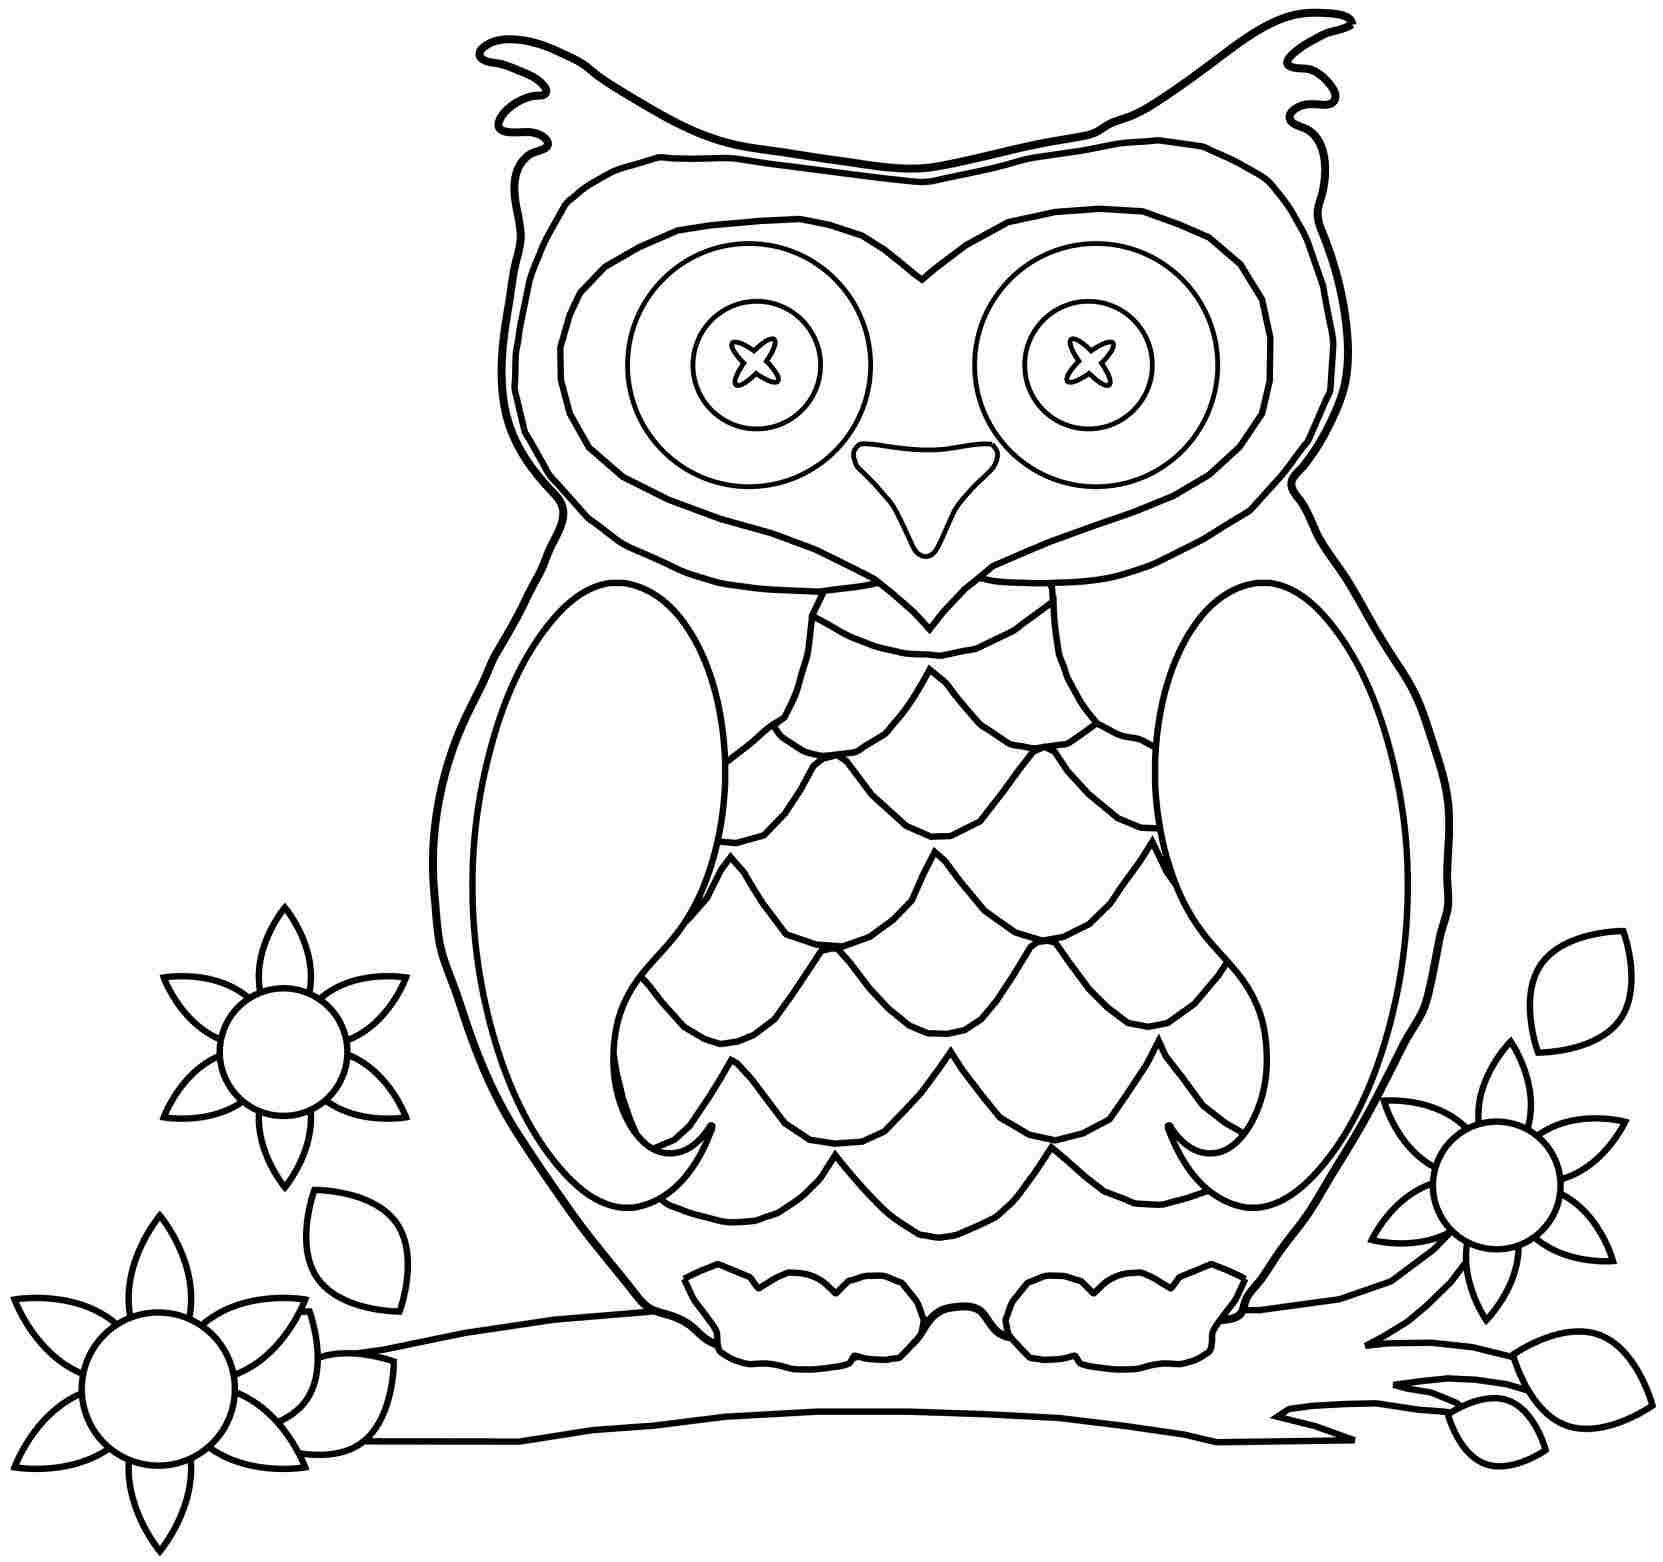 Print out coloring pages for girls - Animal Owl Coloring Sheets Printable For Preschool